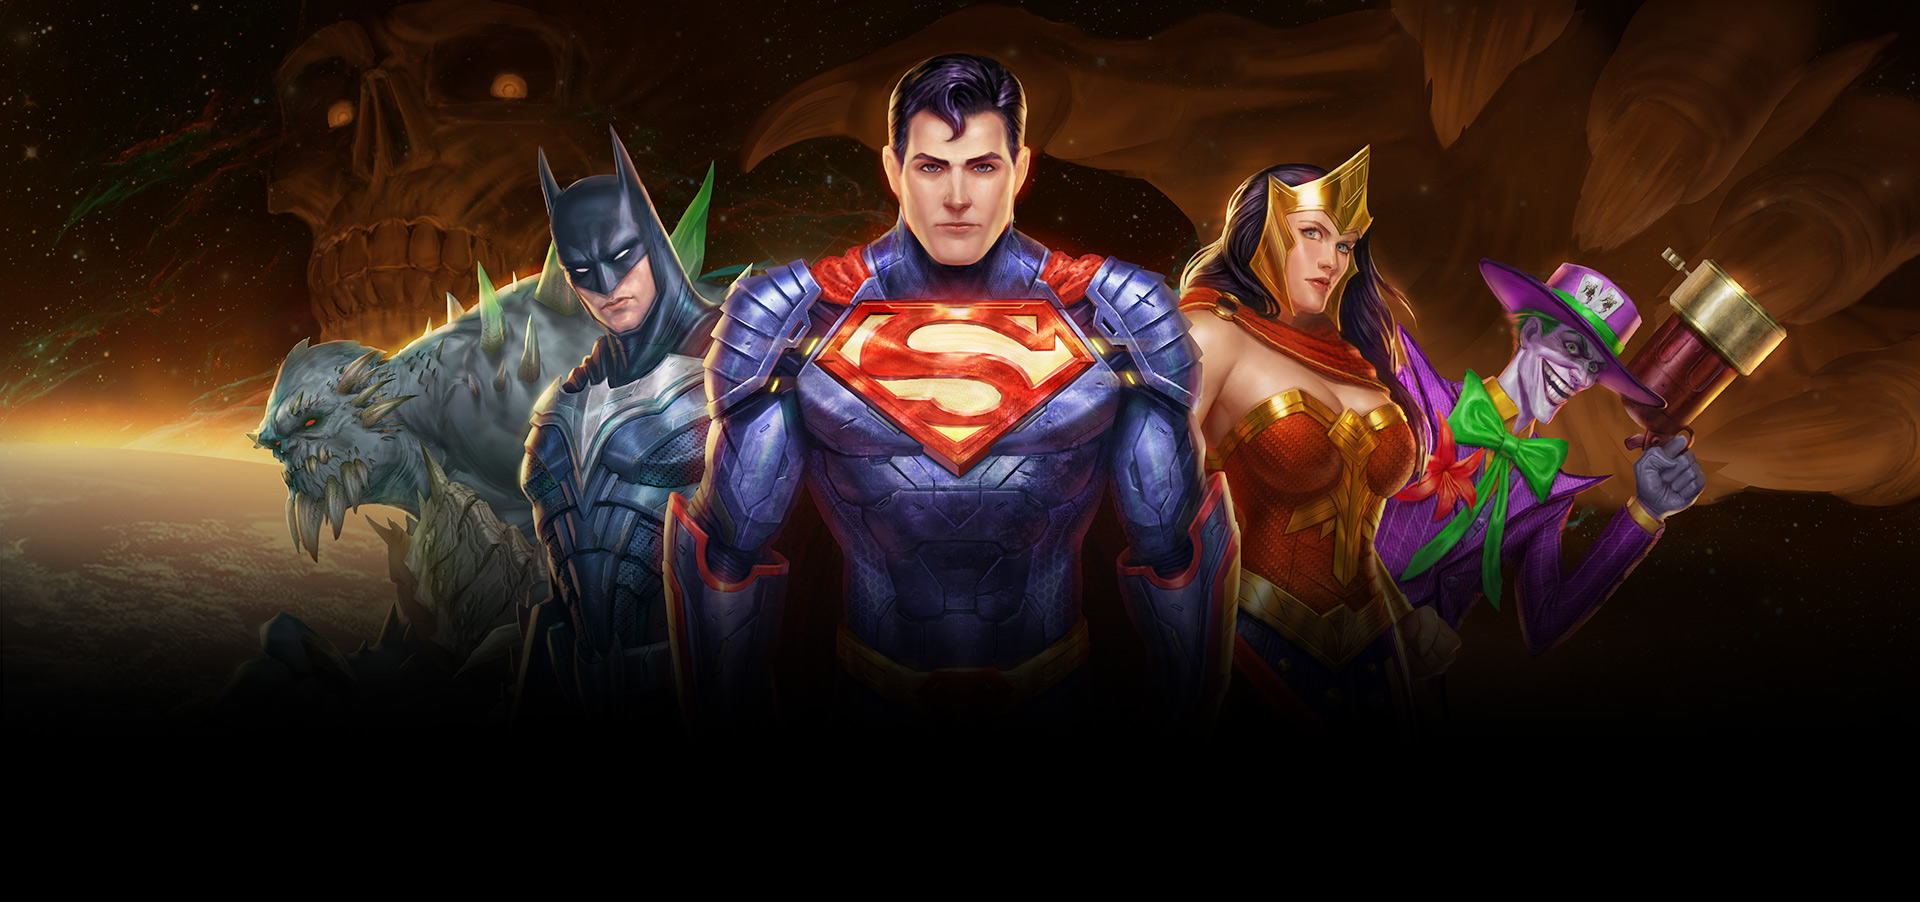 DC Super Heroes and Villains Team Up for the Launch of DC Legends